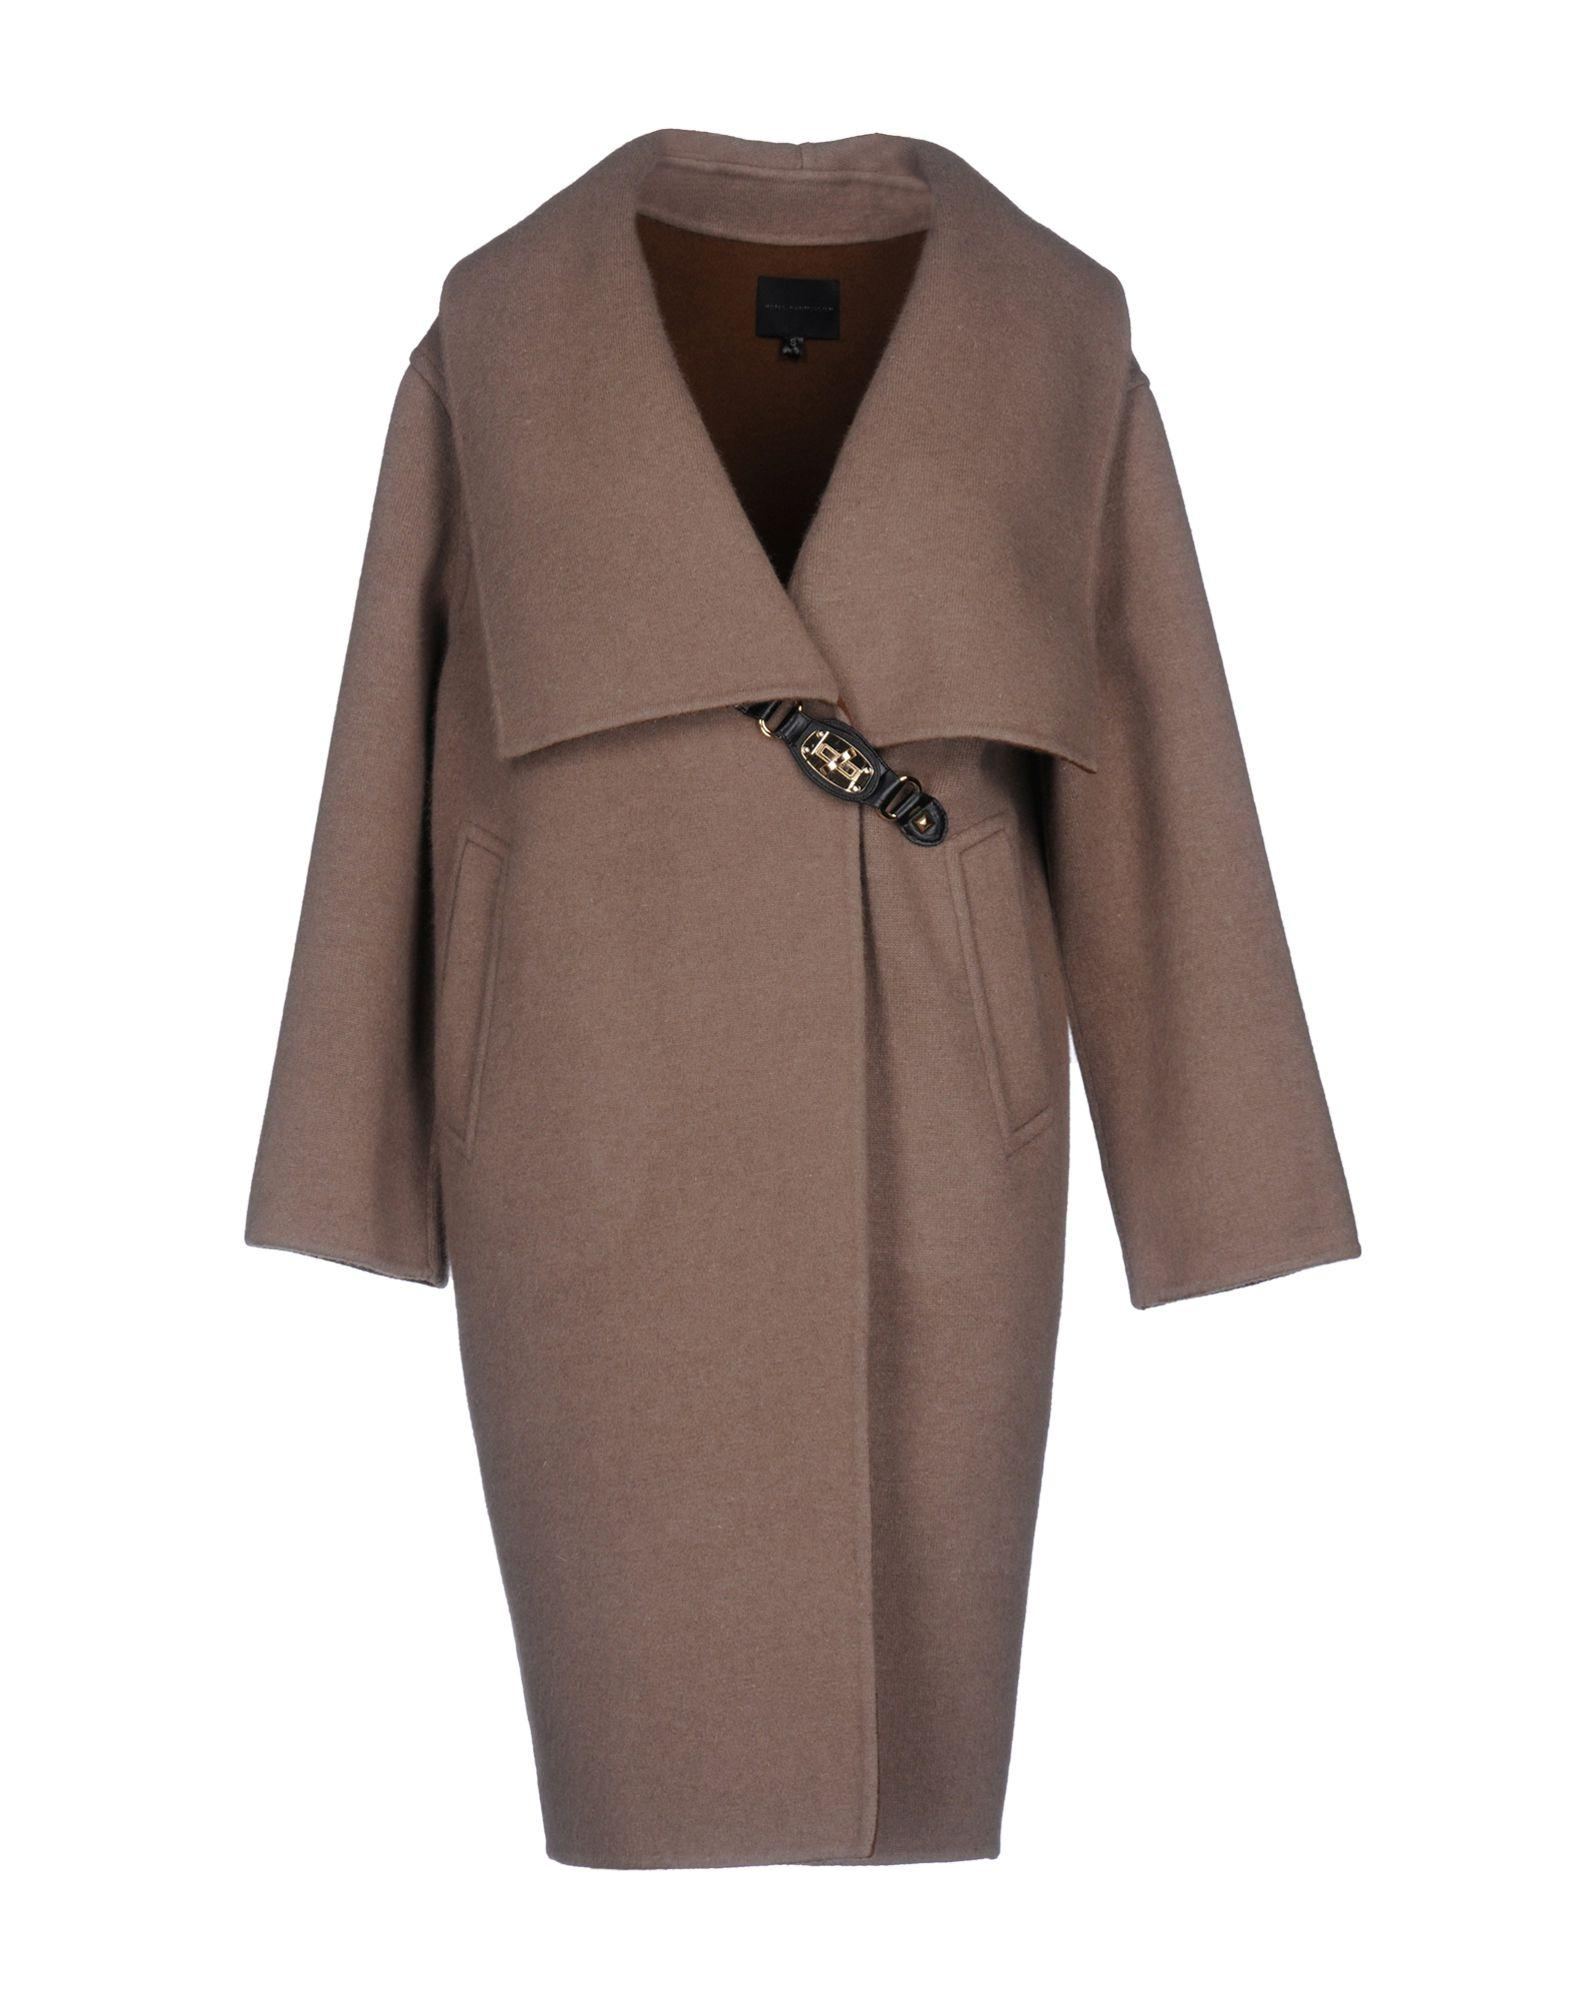 Hotel Particulier Coats In Light Brown